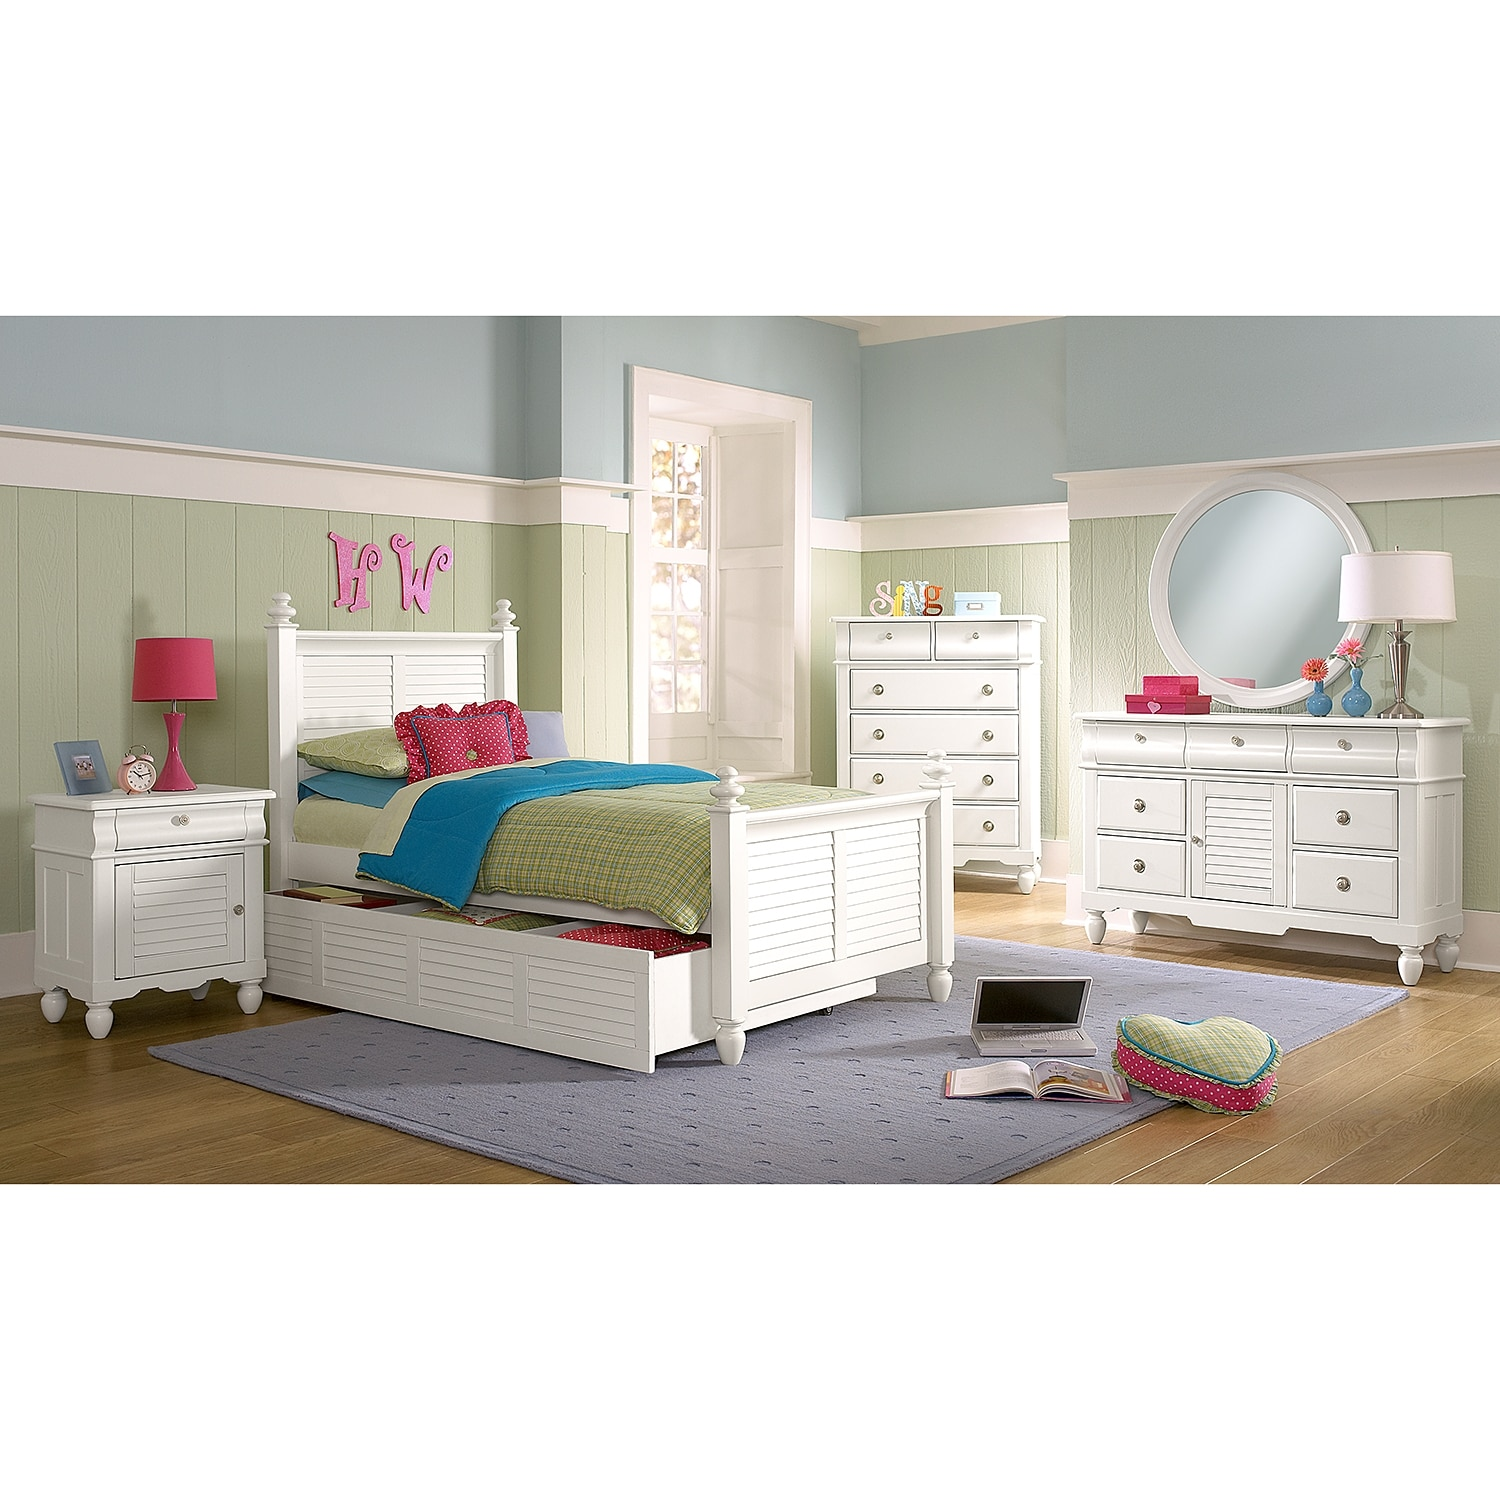 Seaside white twin bed with trundle value city furniture for Beds with trundle